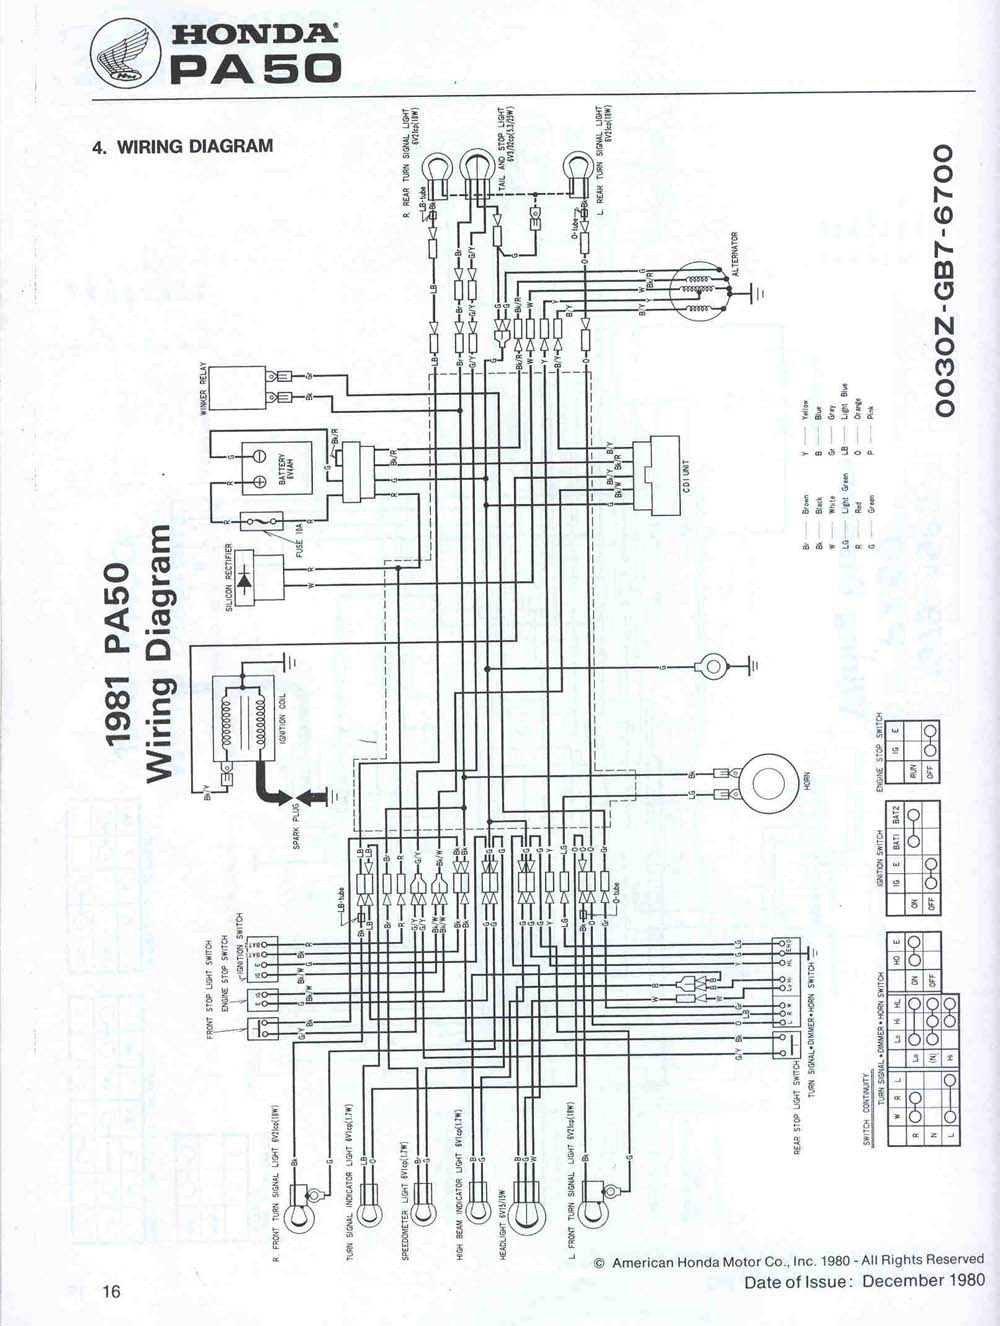 yamaha light kit wiring diagram  yamaha  free engine image